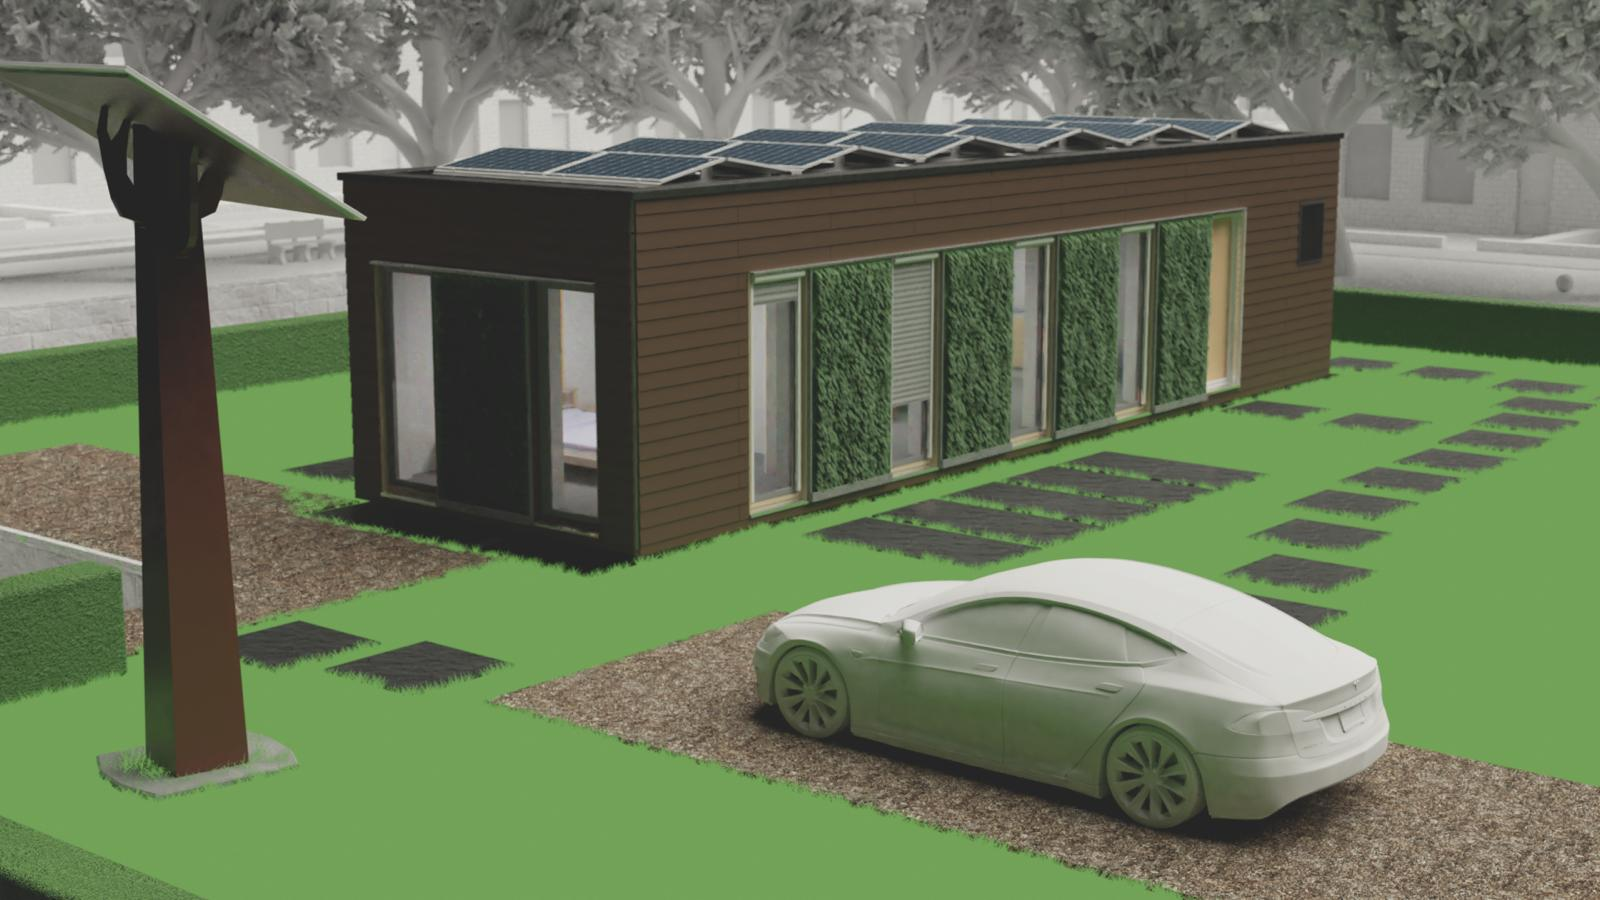 Computer image of a rectangular home that has solar panels on the roof, brown wooden exterior paneling, and floor-to-ceiling windows interspersed with exterior living walls.